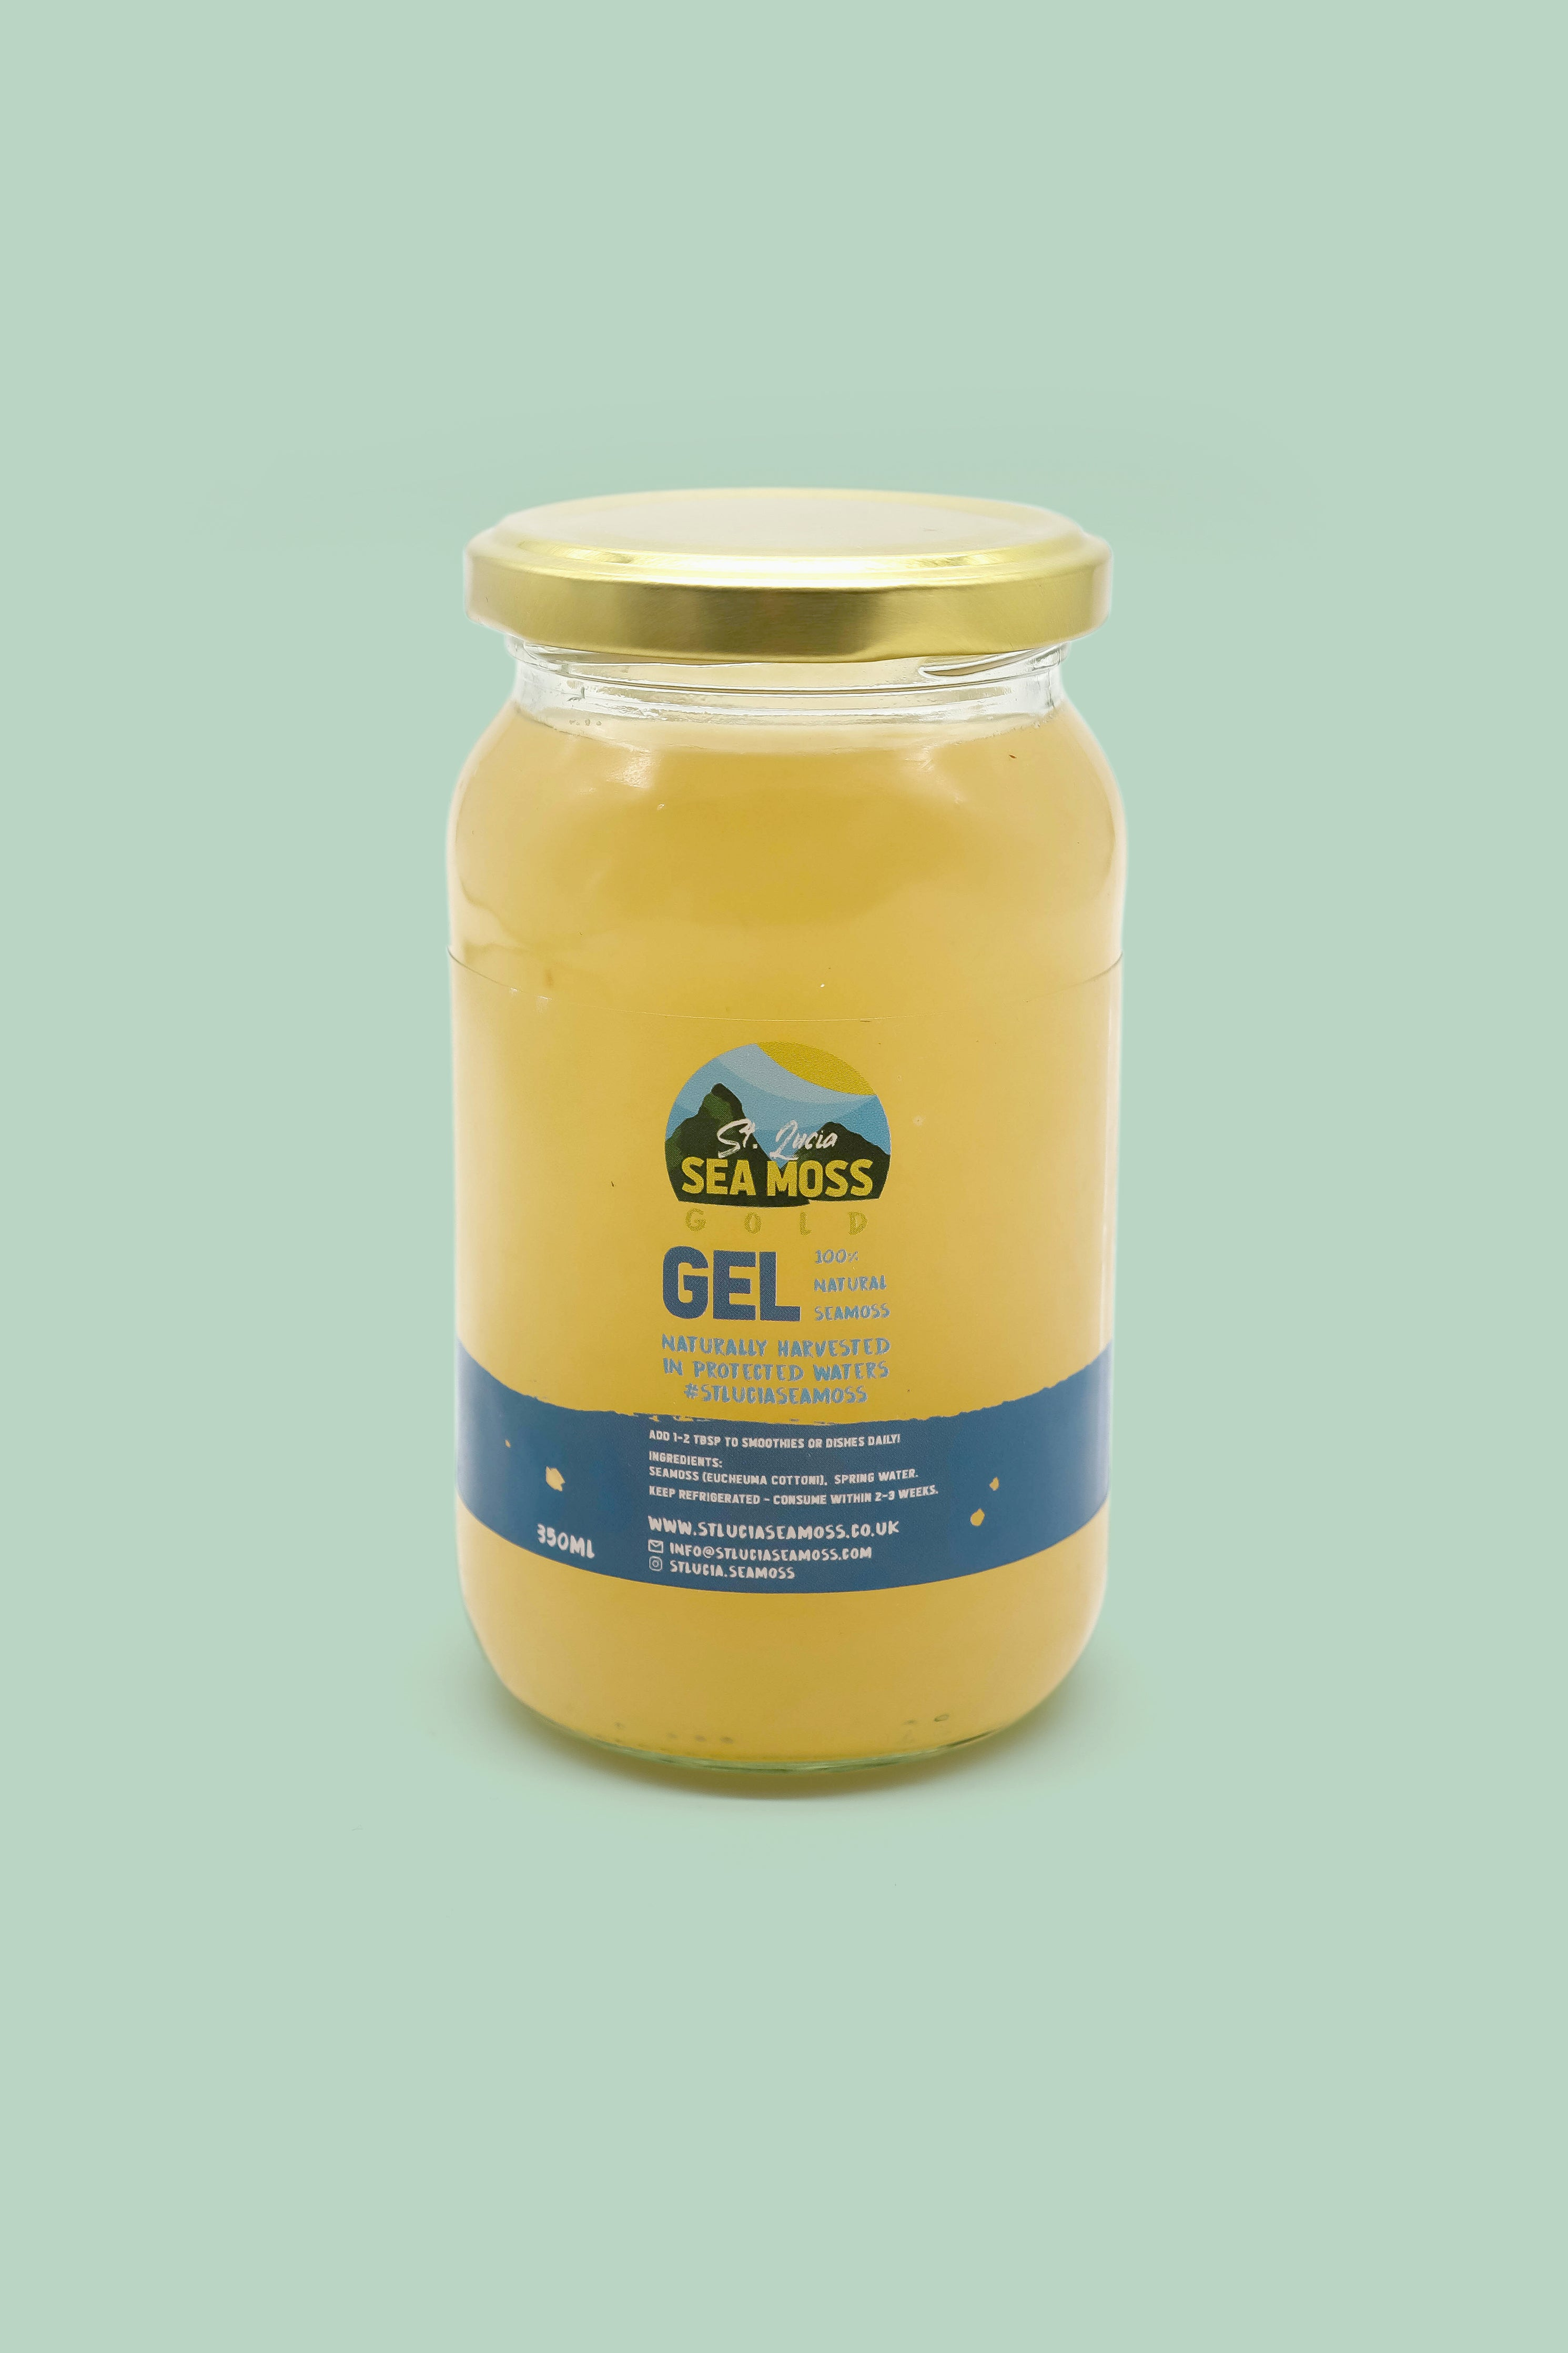 Gold St Lucia Sea Moss Gel 350ml - St Lucia Sea Moss Organic Buy UK